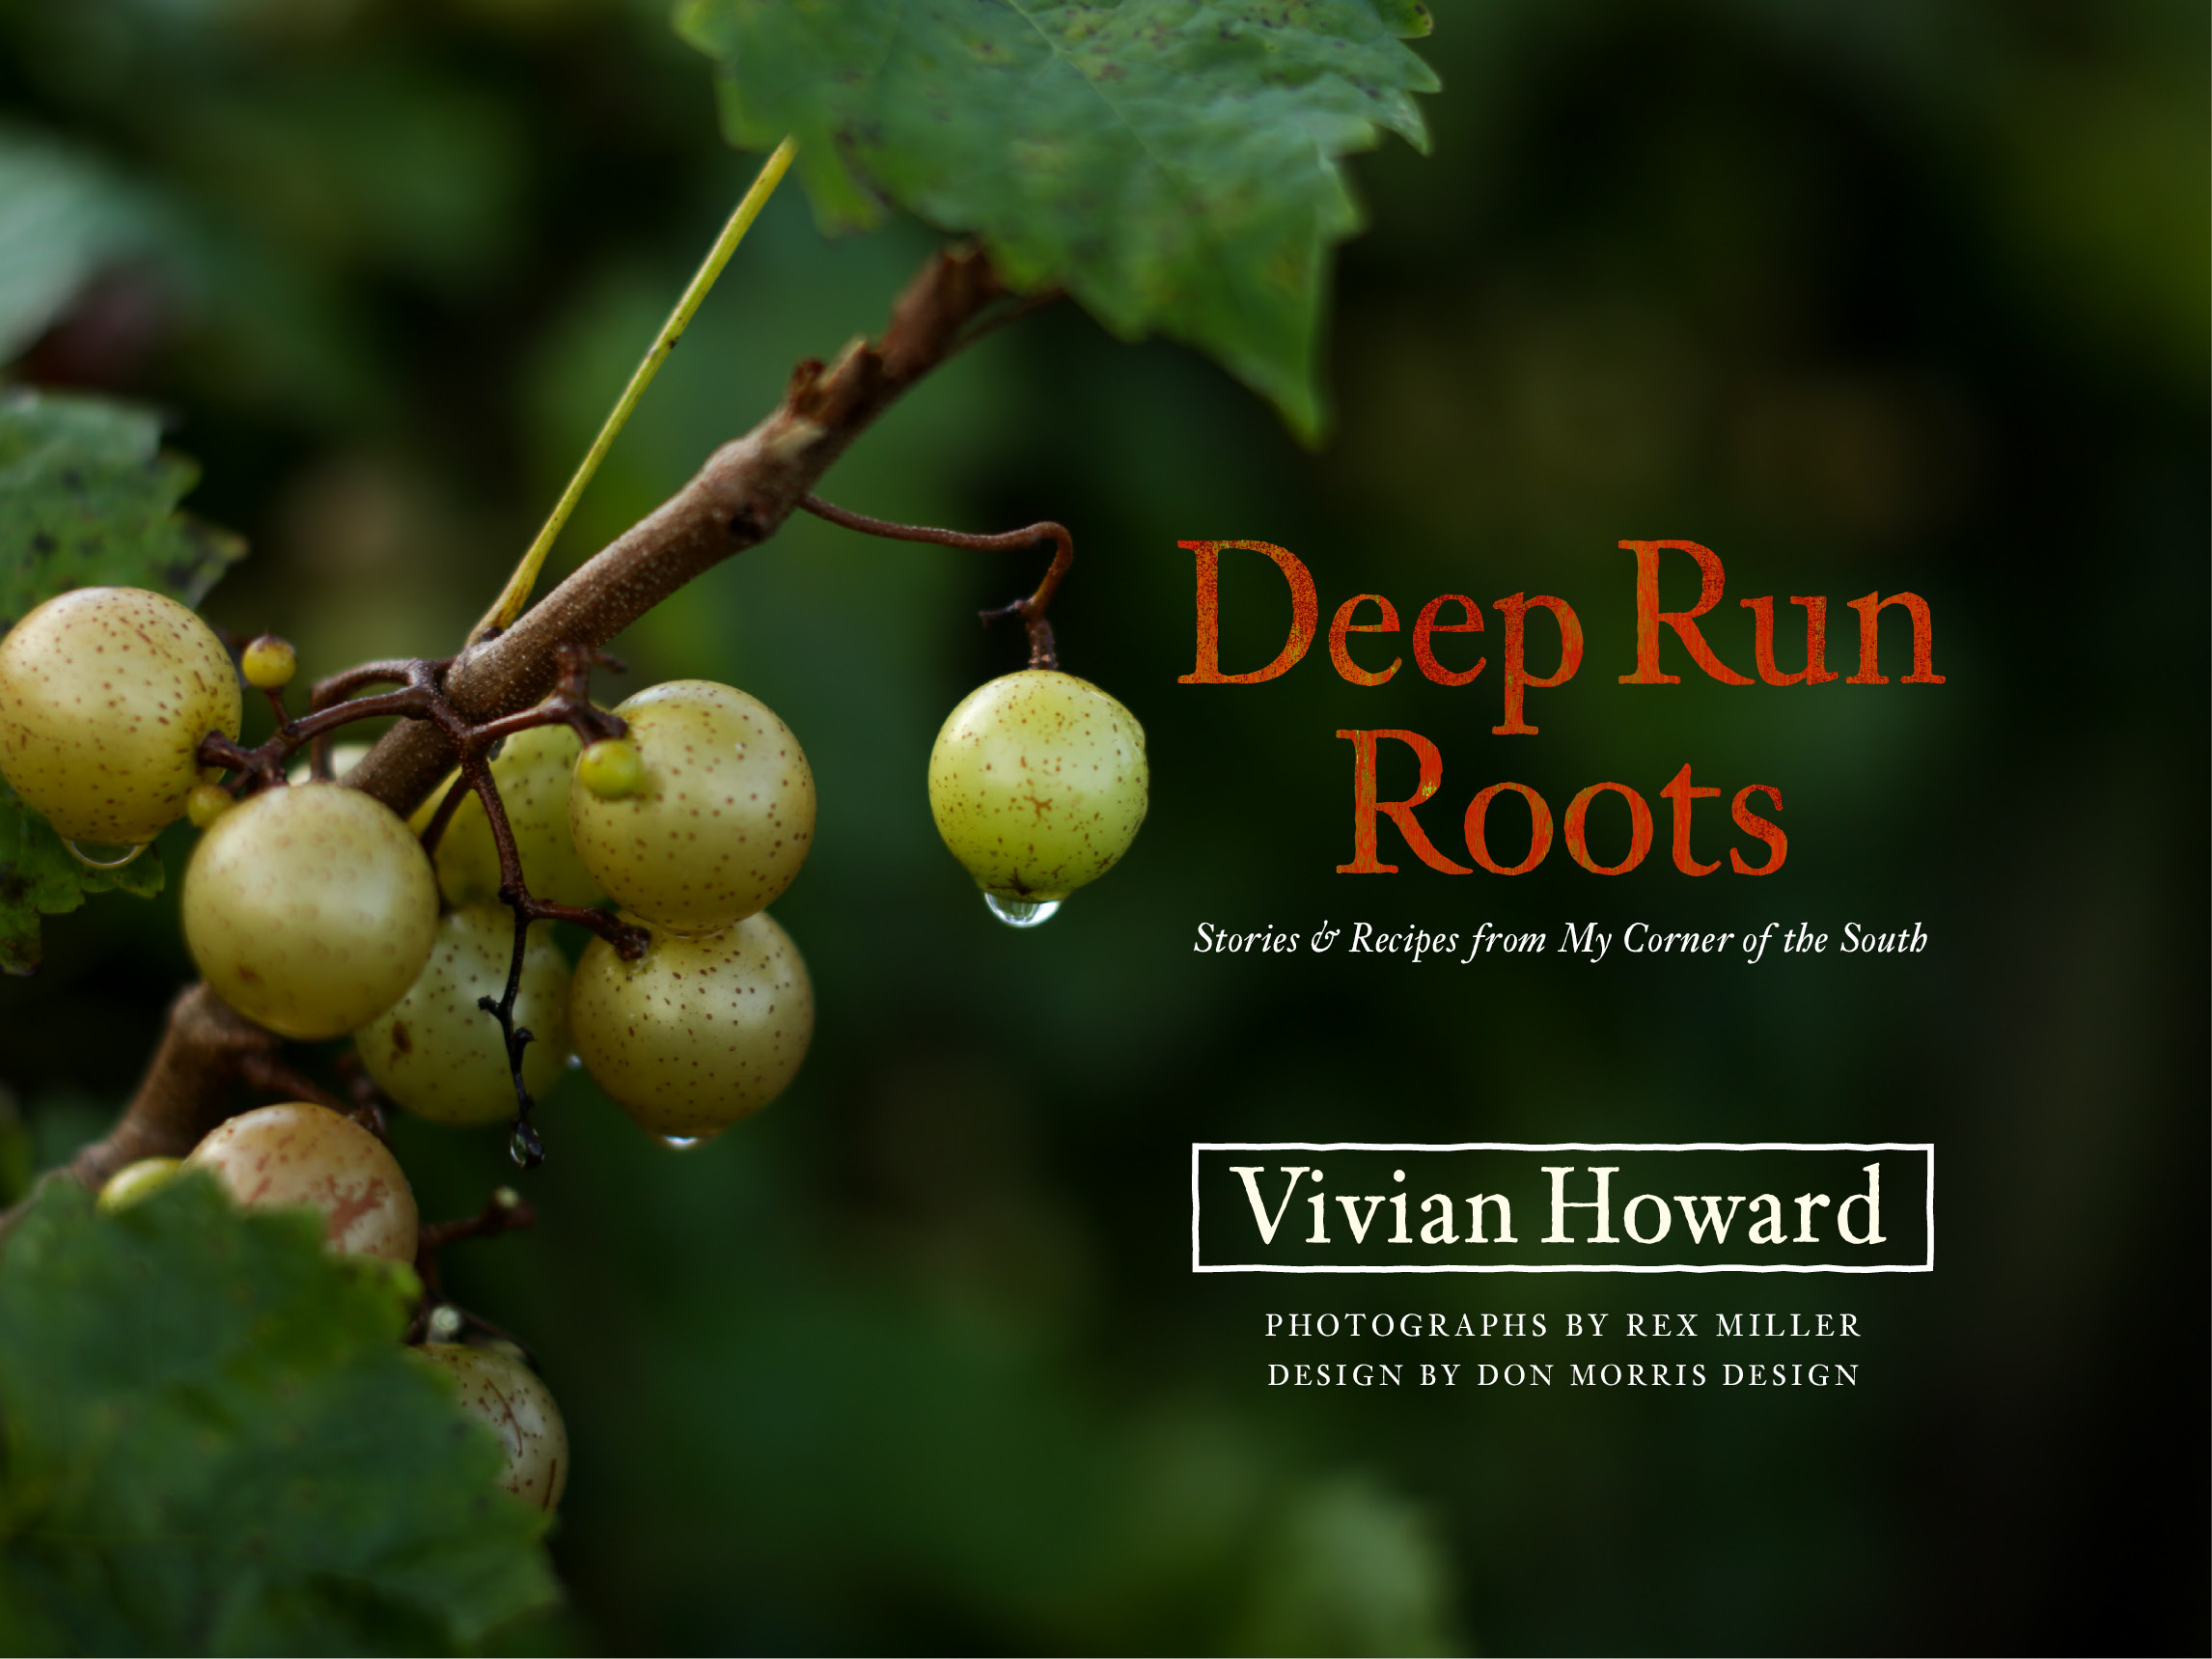 DMD_Deep Run Roots_150_4.jpg